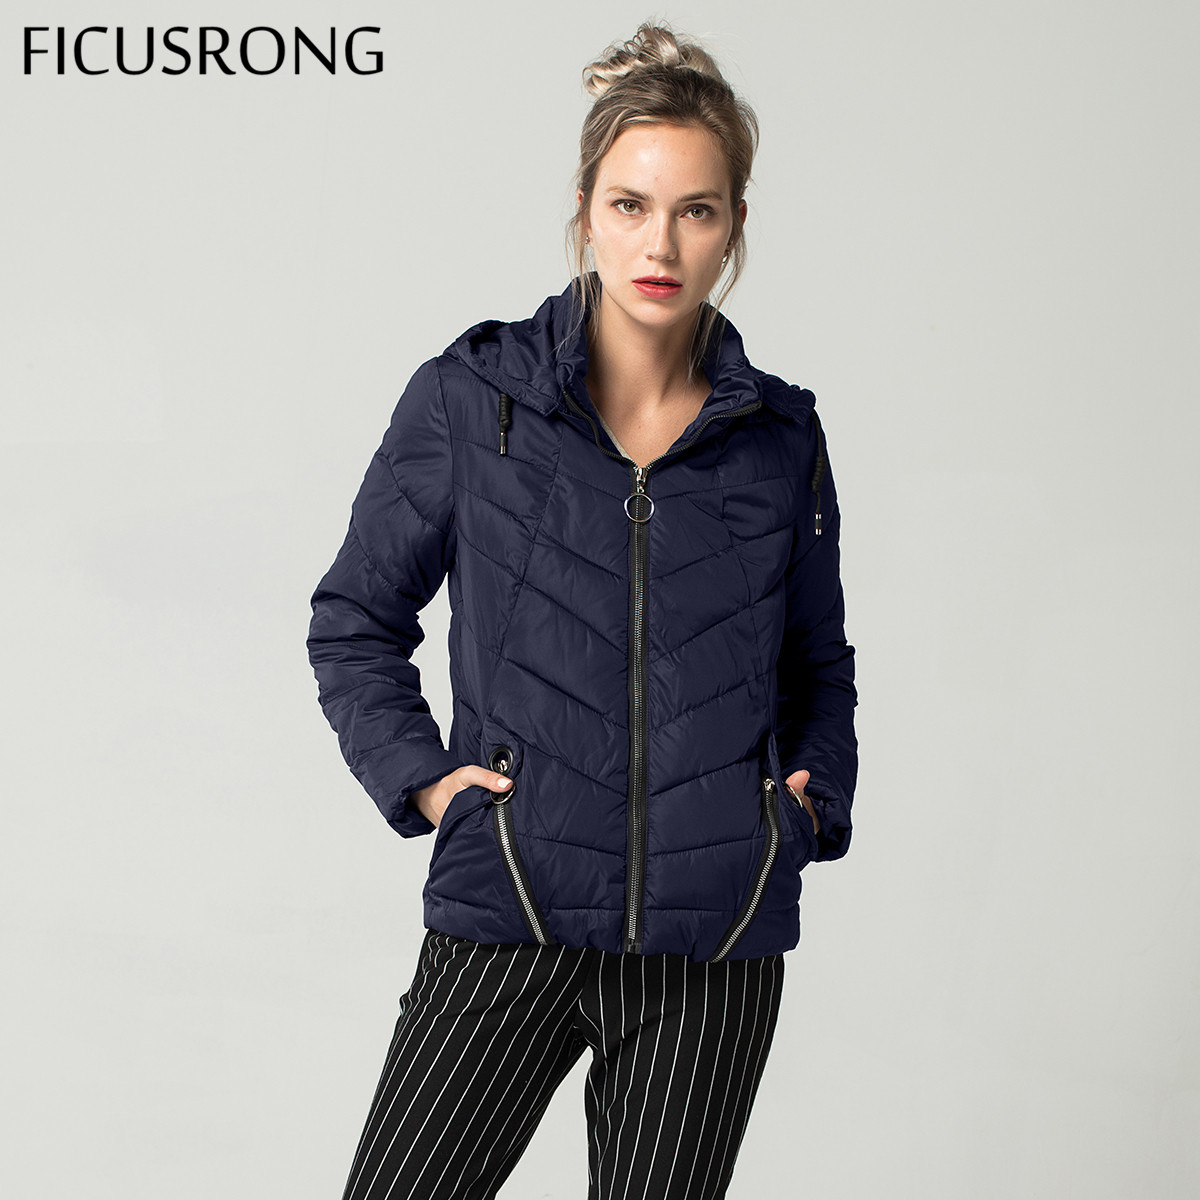 Fashion Spring Autumn Jacket Women Down   Parkas   Outerwear Womens Hooded Coats Slim Cotton Padded Jacket Female FICUSRONG